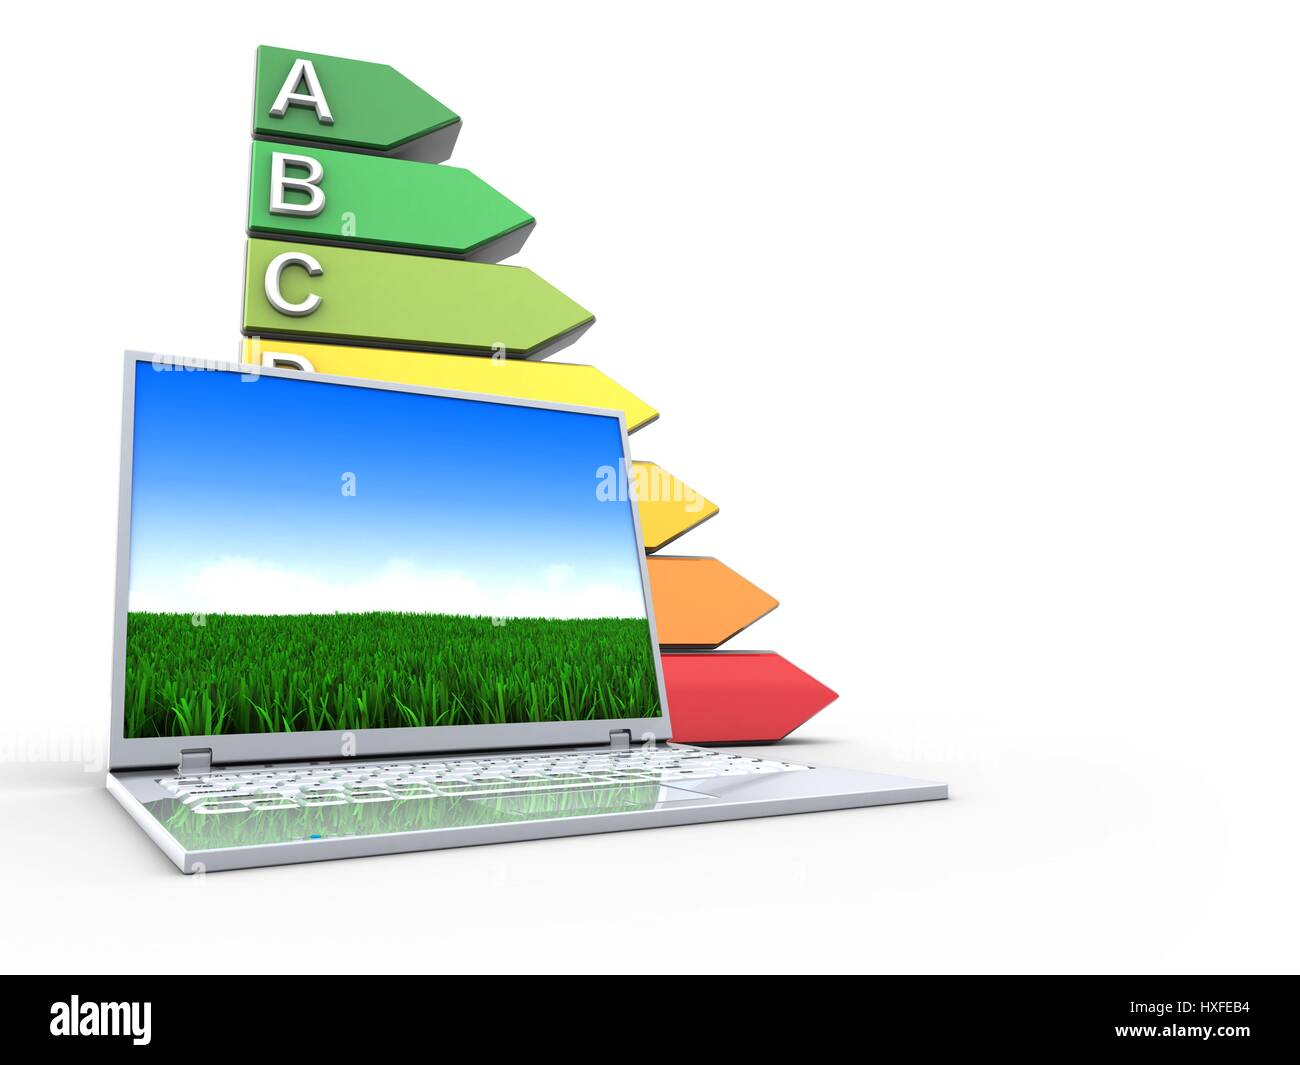 3d illustration of laptop computer over white background with efficient ranks - Stock Image